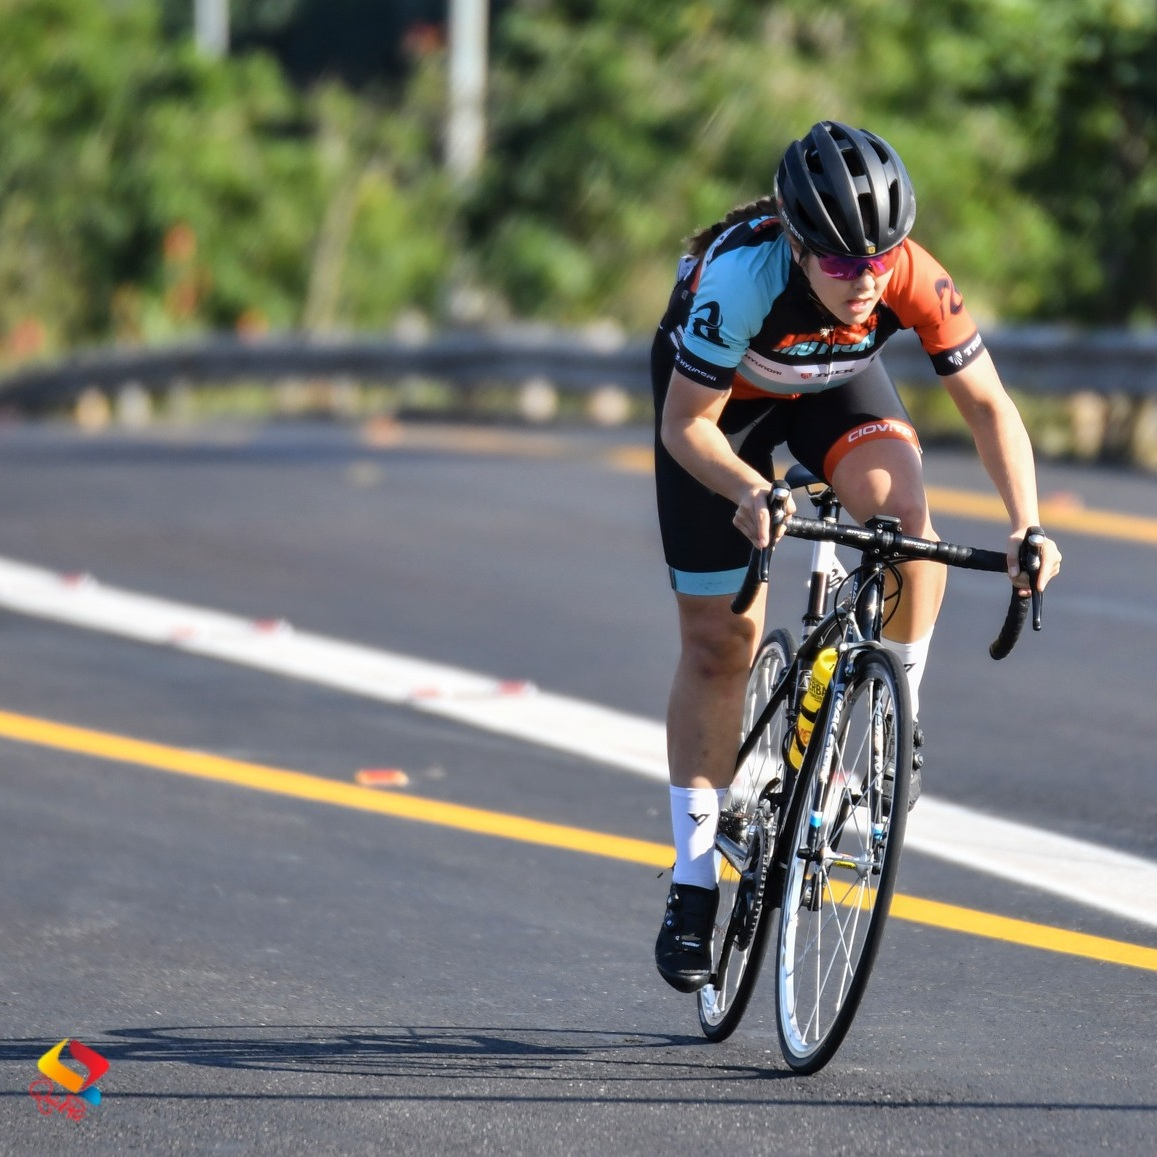 Frances Janse van Rensburg won the Women's Junior road race title at the 2019 SA ROAD National Championships for Junior, Youth and younger in Westville on Sunday 23 June 2019.